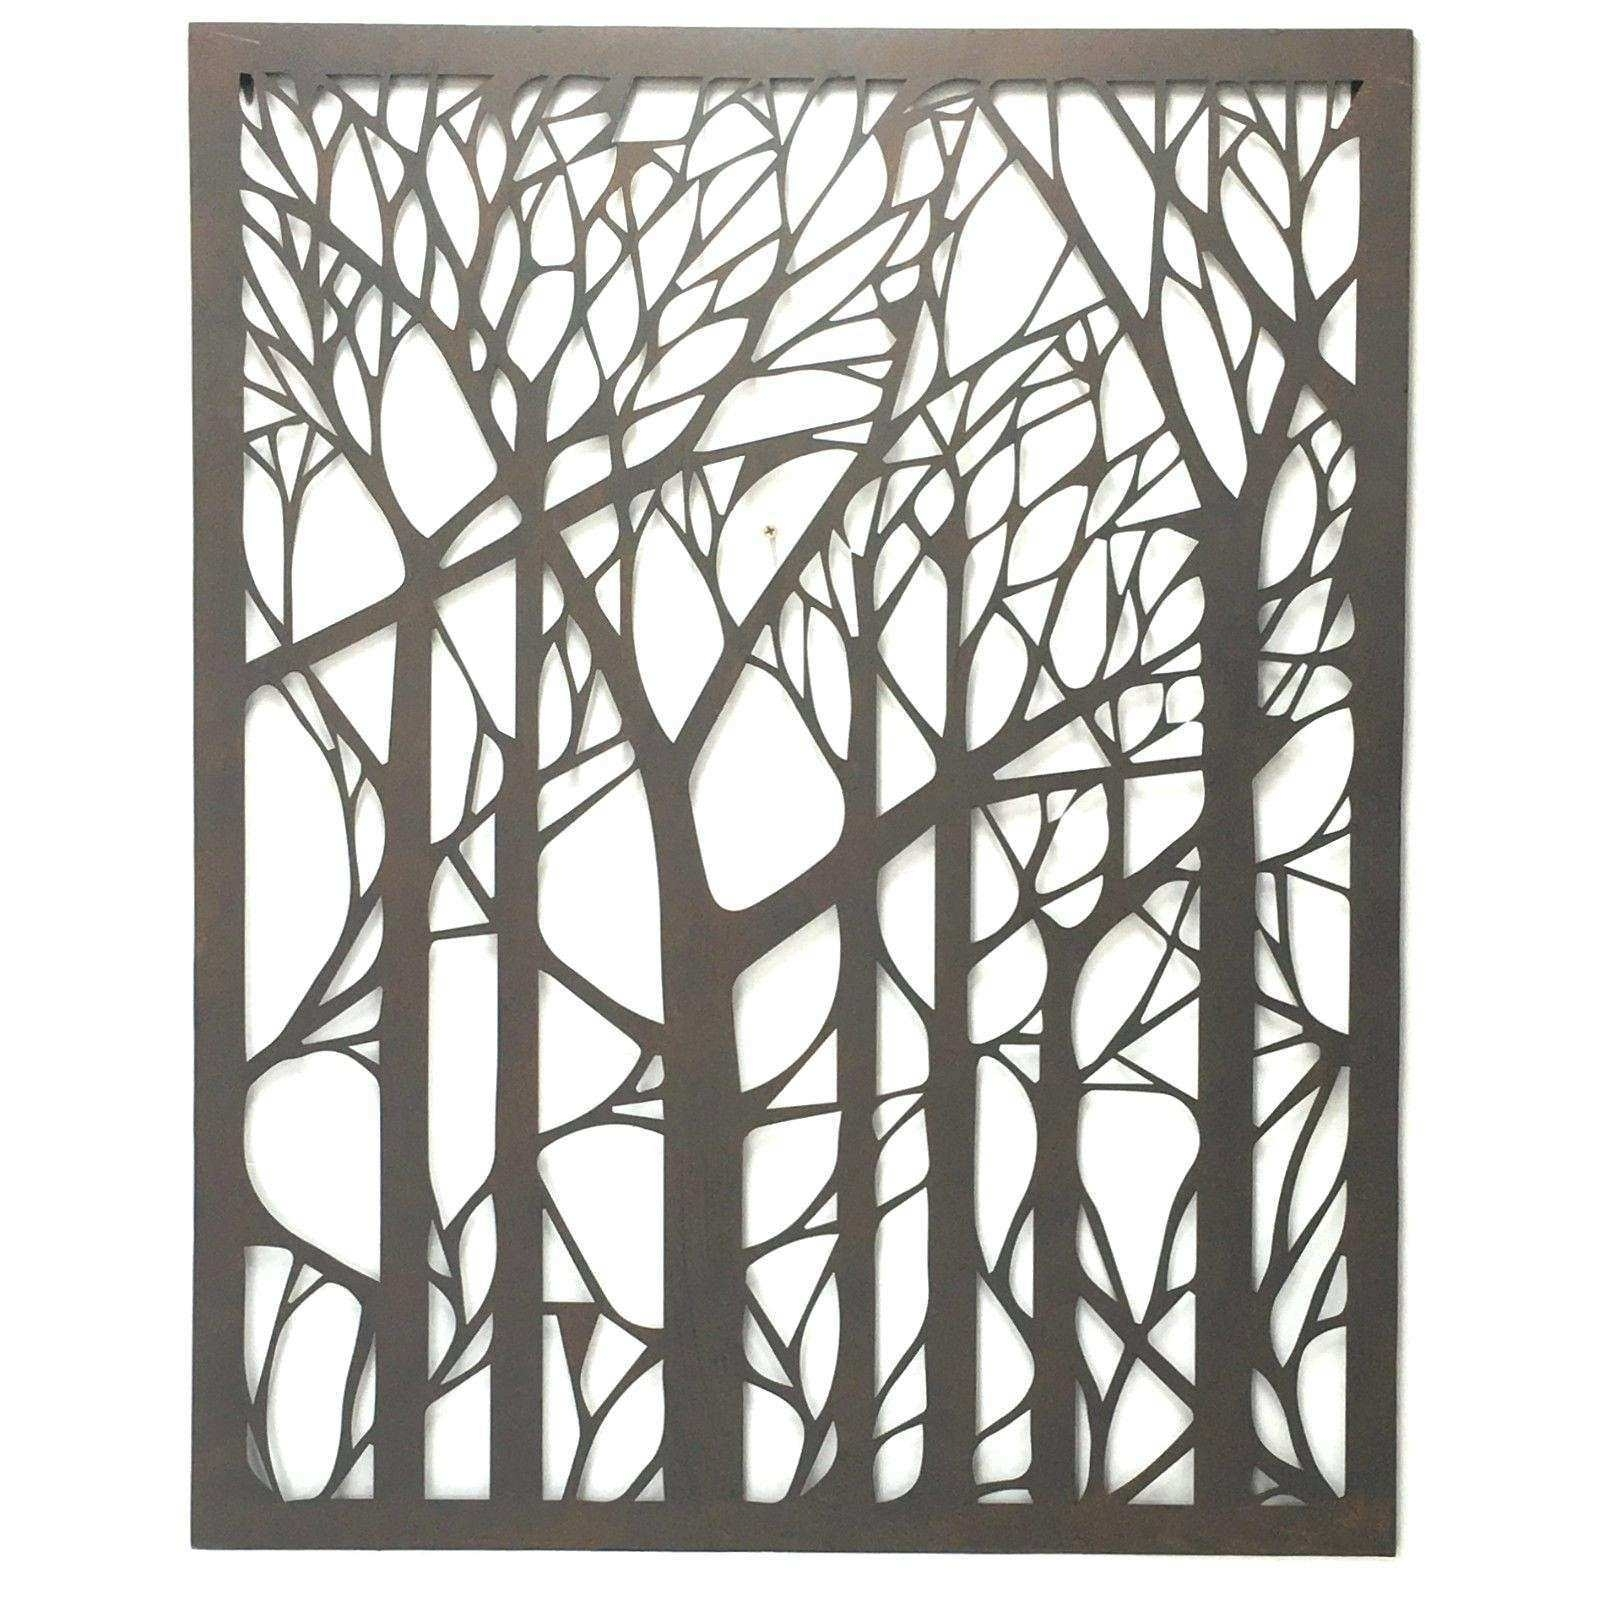 Large Outdoor Wall Decor Awesome 20 Best Metal Wall Art For Outdoors within Large Outdoor Metal Wall Art (Image 12 of 20)